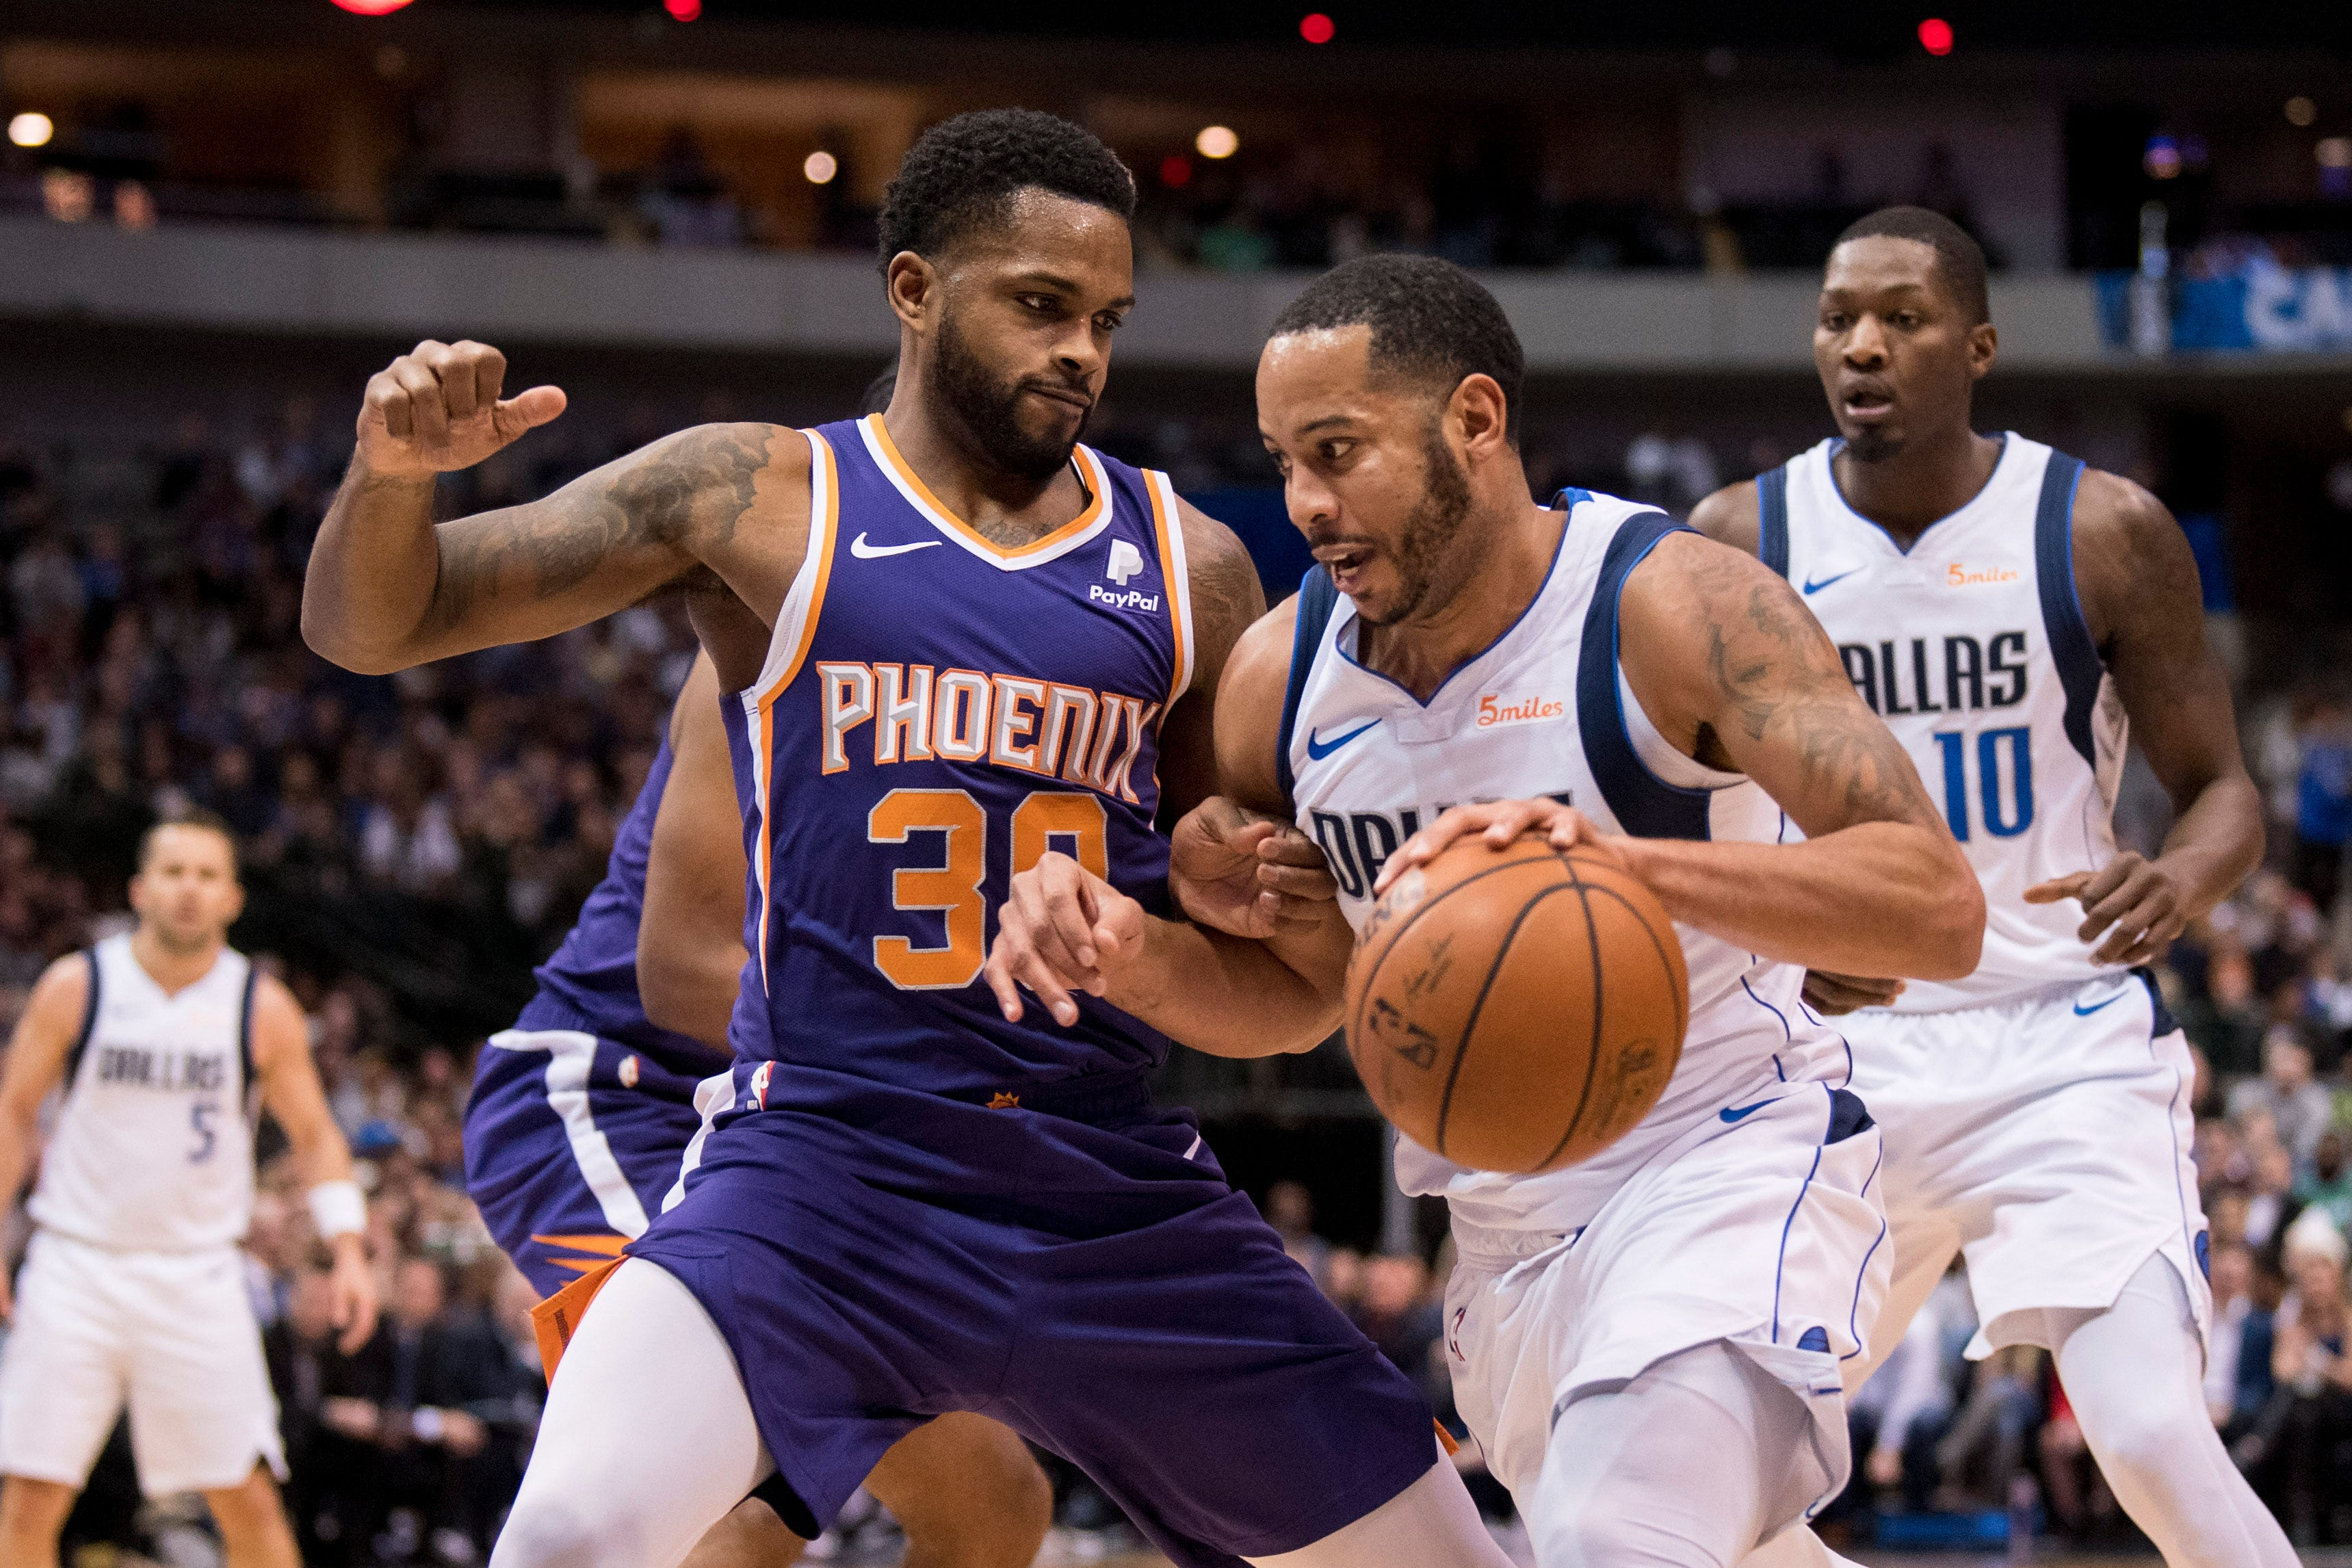 Suns guard Troy Daniels producing with limited opportunities